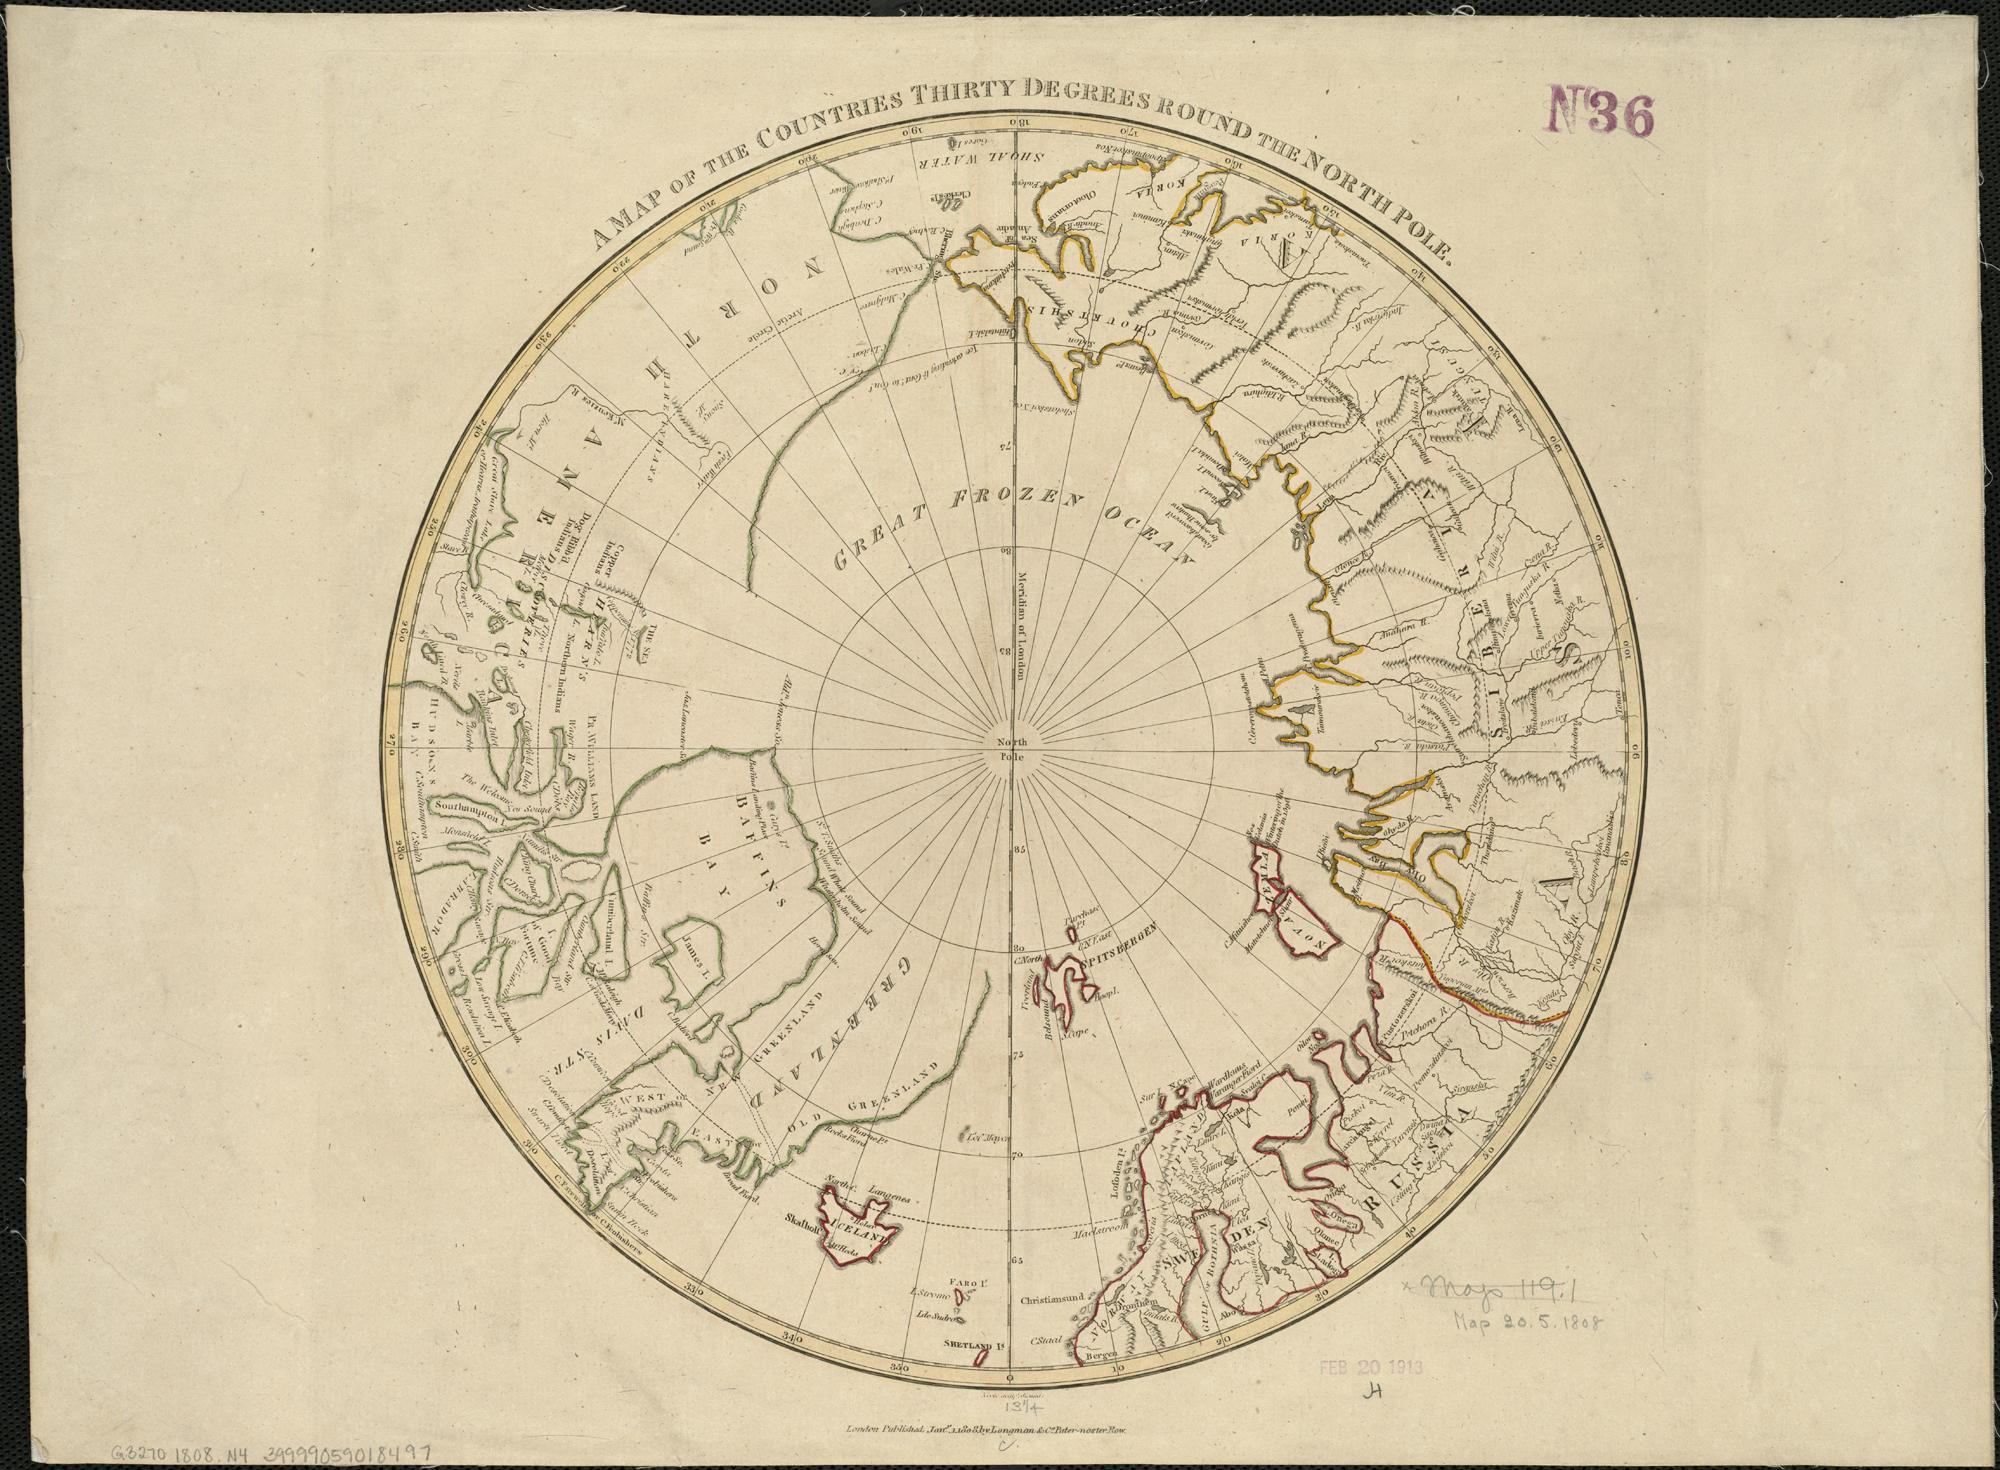 FileA map of the countries thirty degrees round the north pole